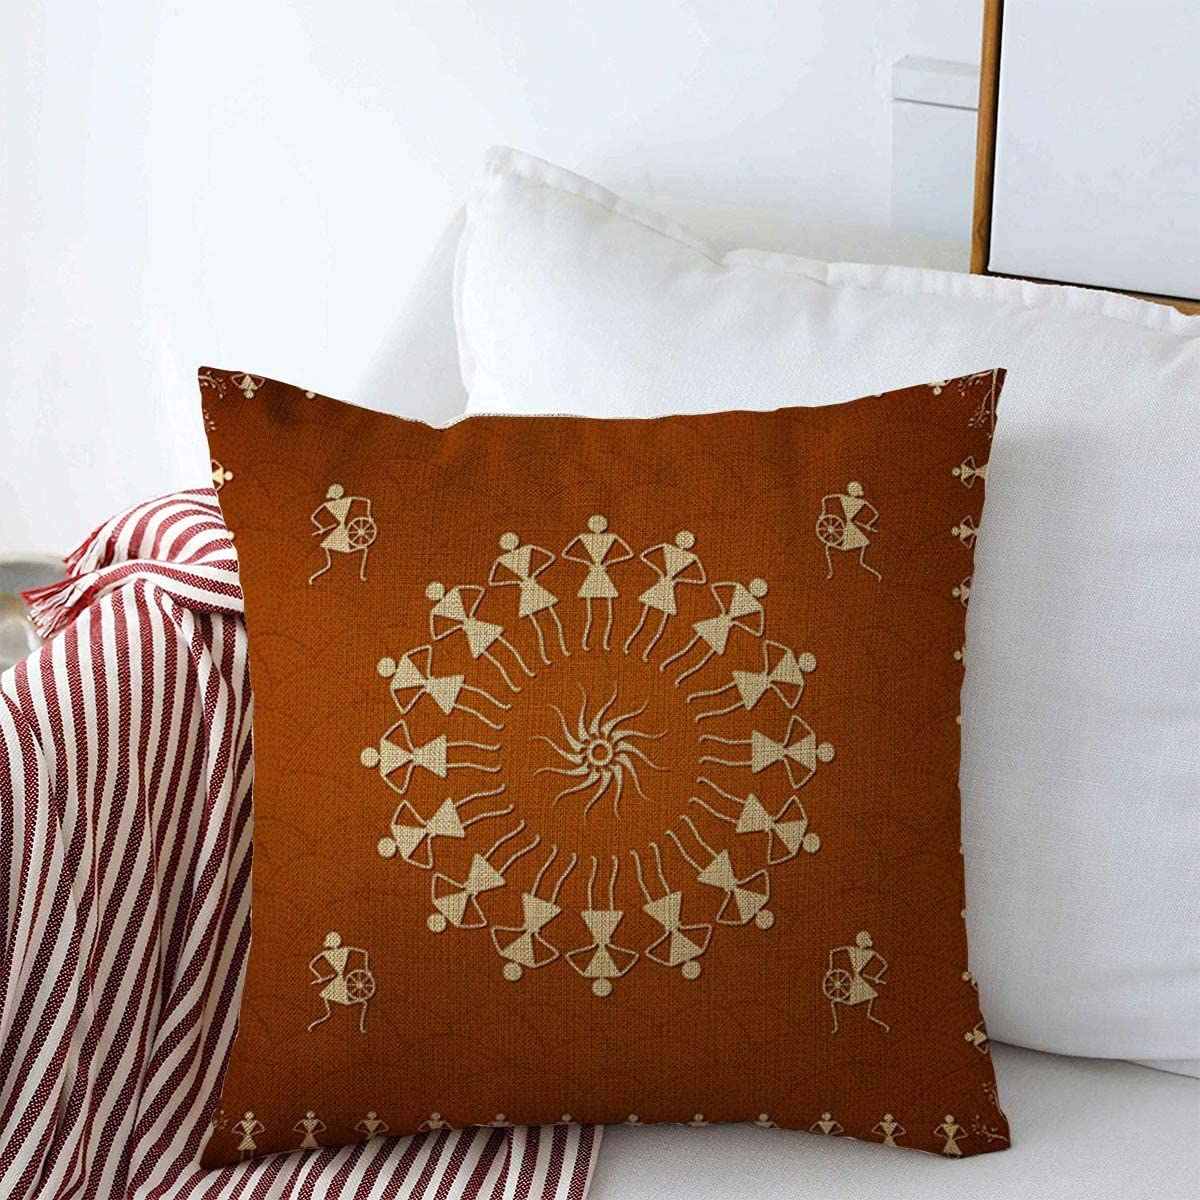 Starosa Throw Pillows Cover 16 x 16 Inches Madhubani Textures People Epic Dancing Warli Classic Old Painting India Wall Rural Handicraft Famous Cushion Case Cotton Linen for Fall Home Decor